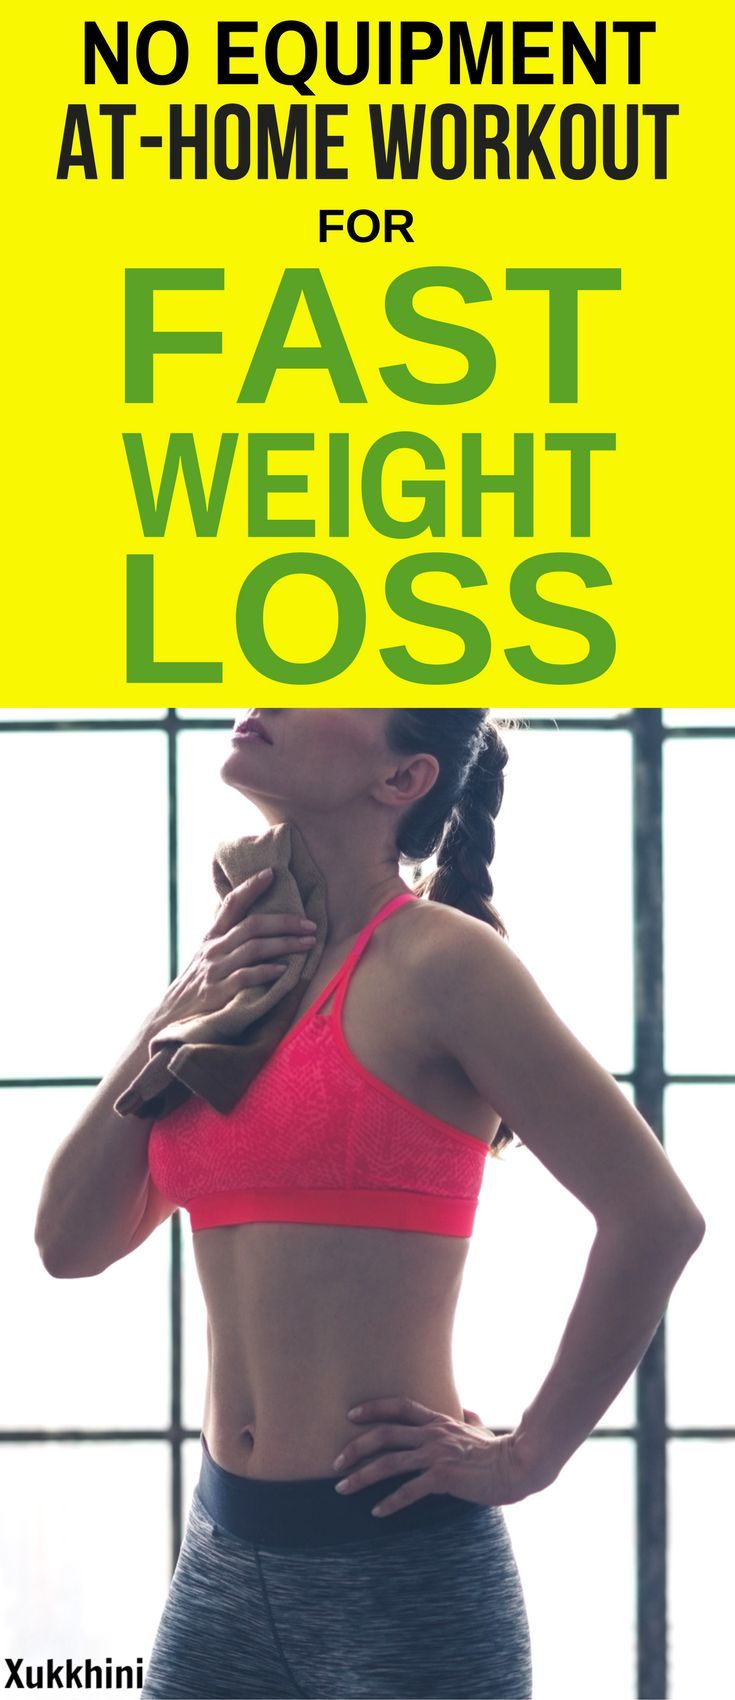 How would you like to get twice the fat-loss results in half the time? This secret home workout was developed by champions for fast weightloss. What's more, you can perform it at home without any special equipment. #athomeworkout #bodyweightworkout No Equipment workout |  Lose weight Quick | Weight Loss Motivation | Weight Loss Tips